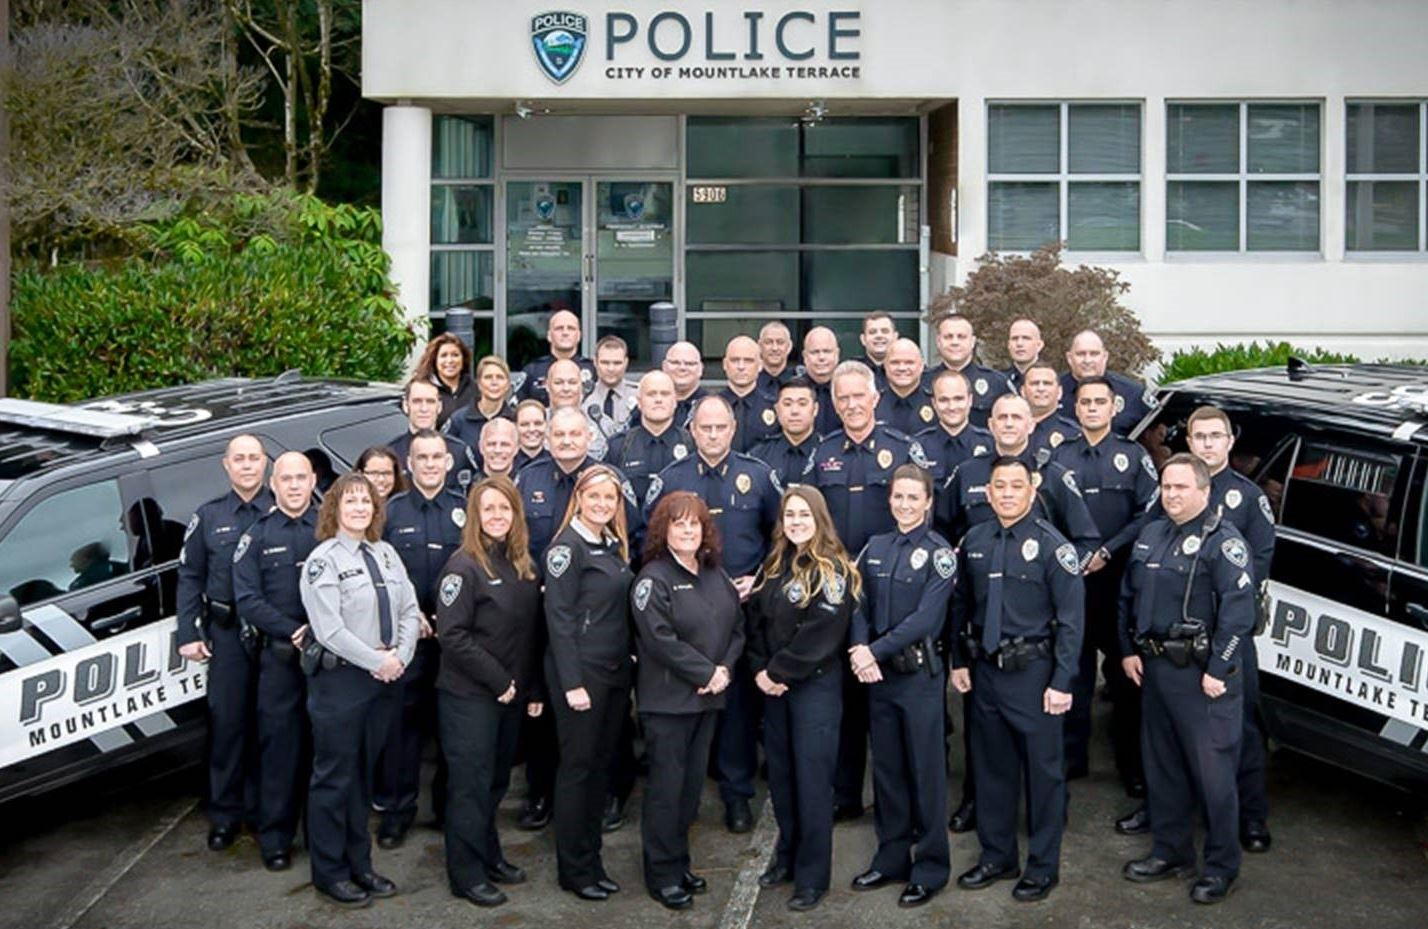 2018 Police department group picture in front of Police building